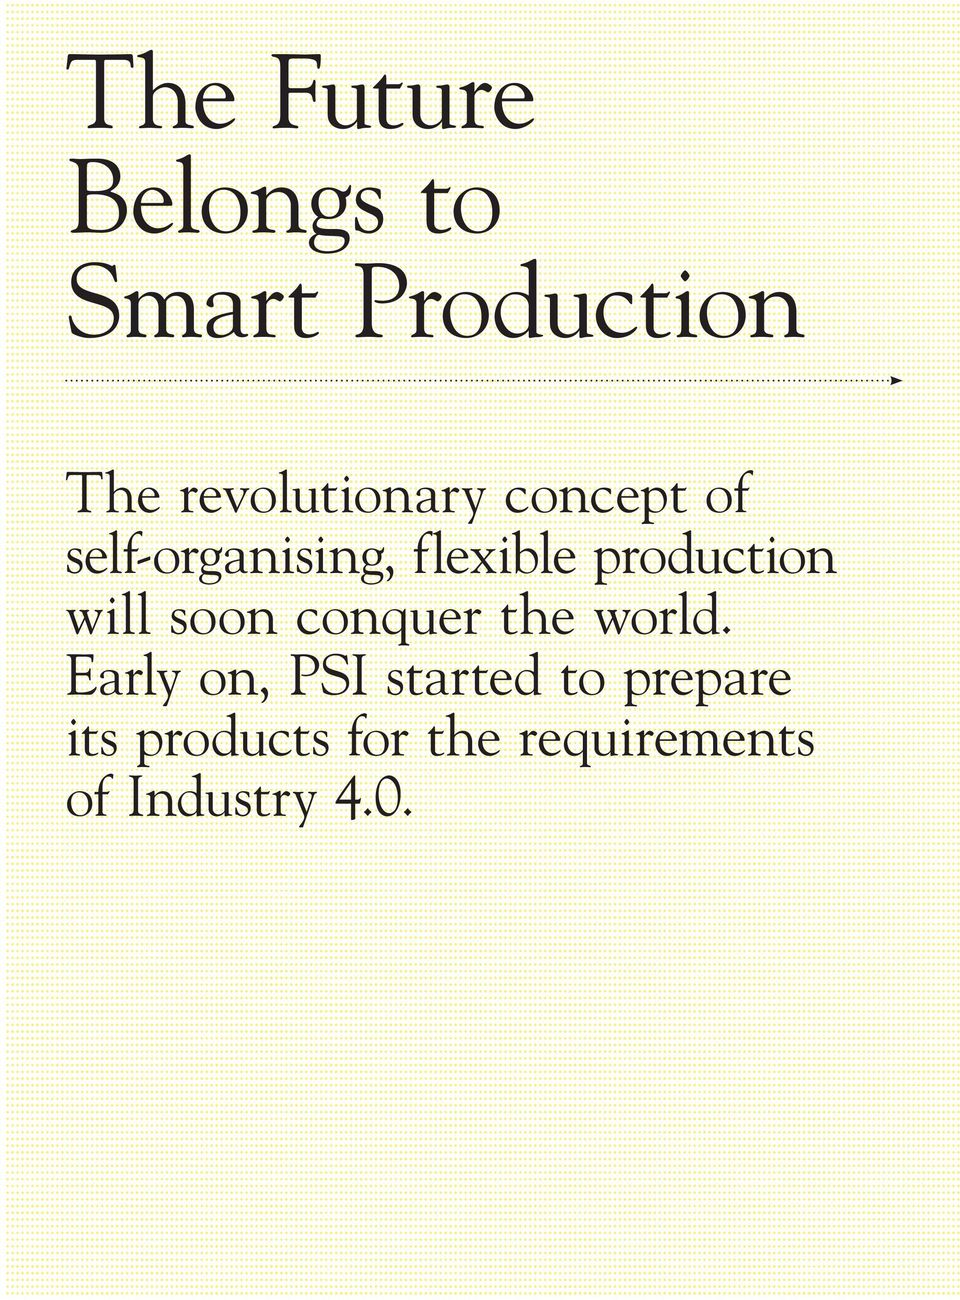 production will soon conquer the world.